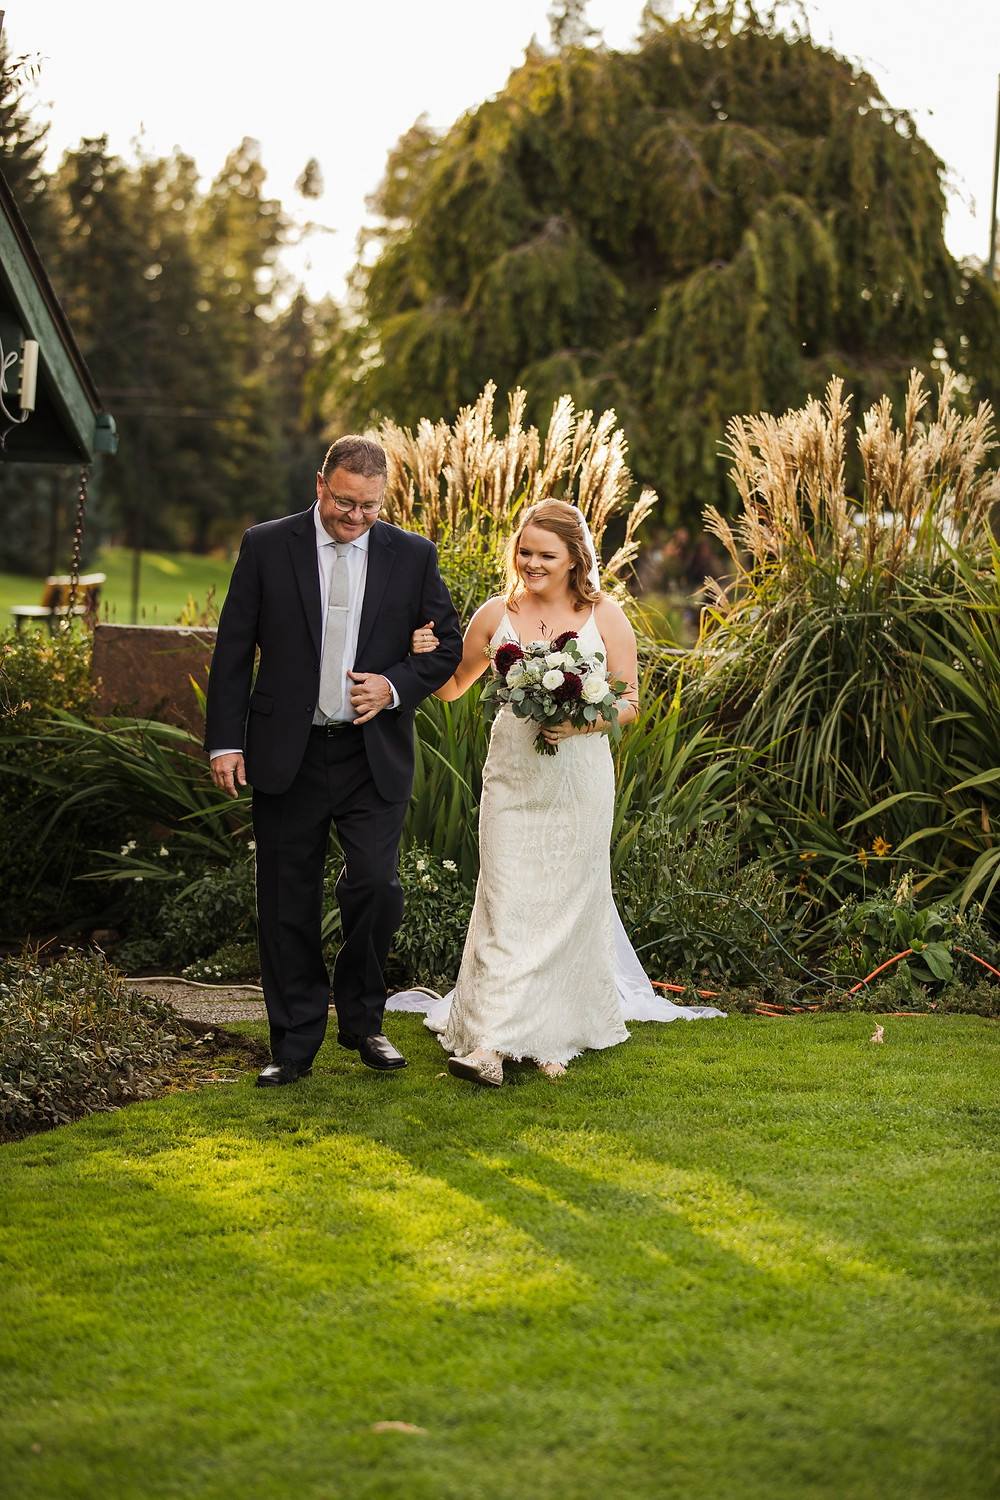 father-walking-daughter-down-the-aisle.jpg